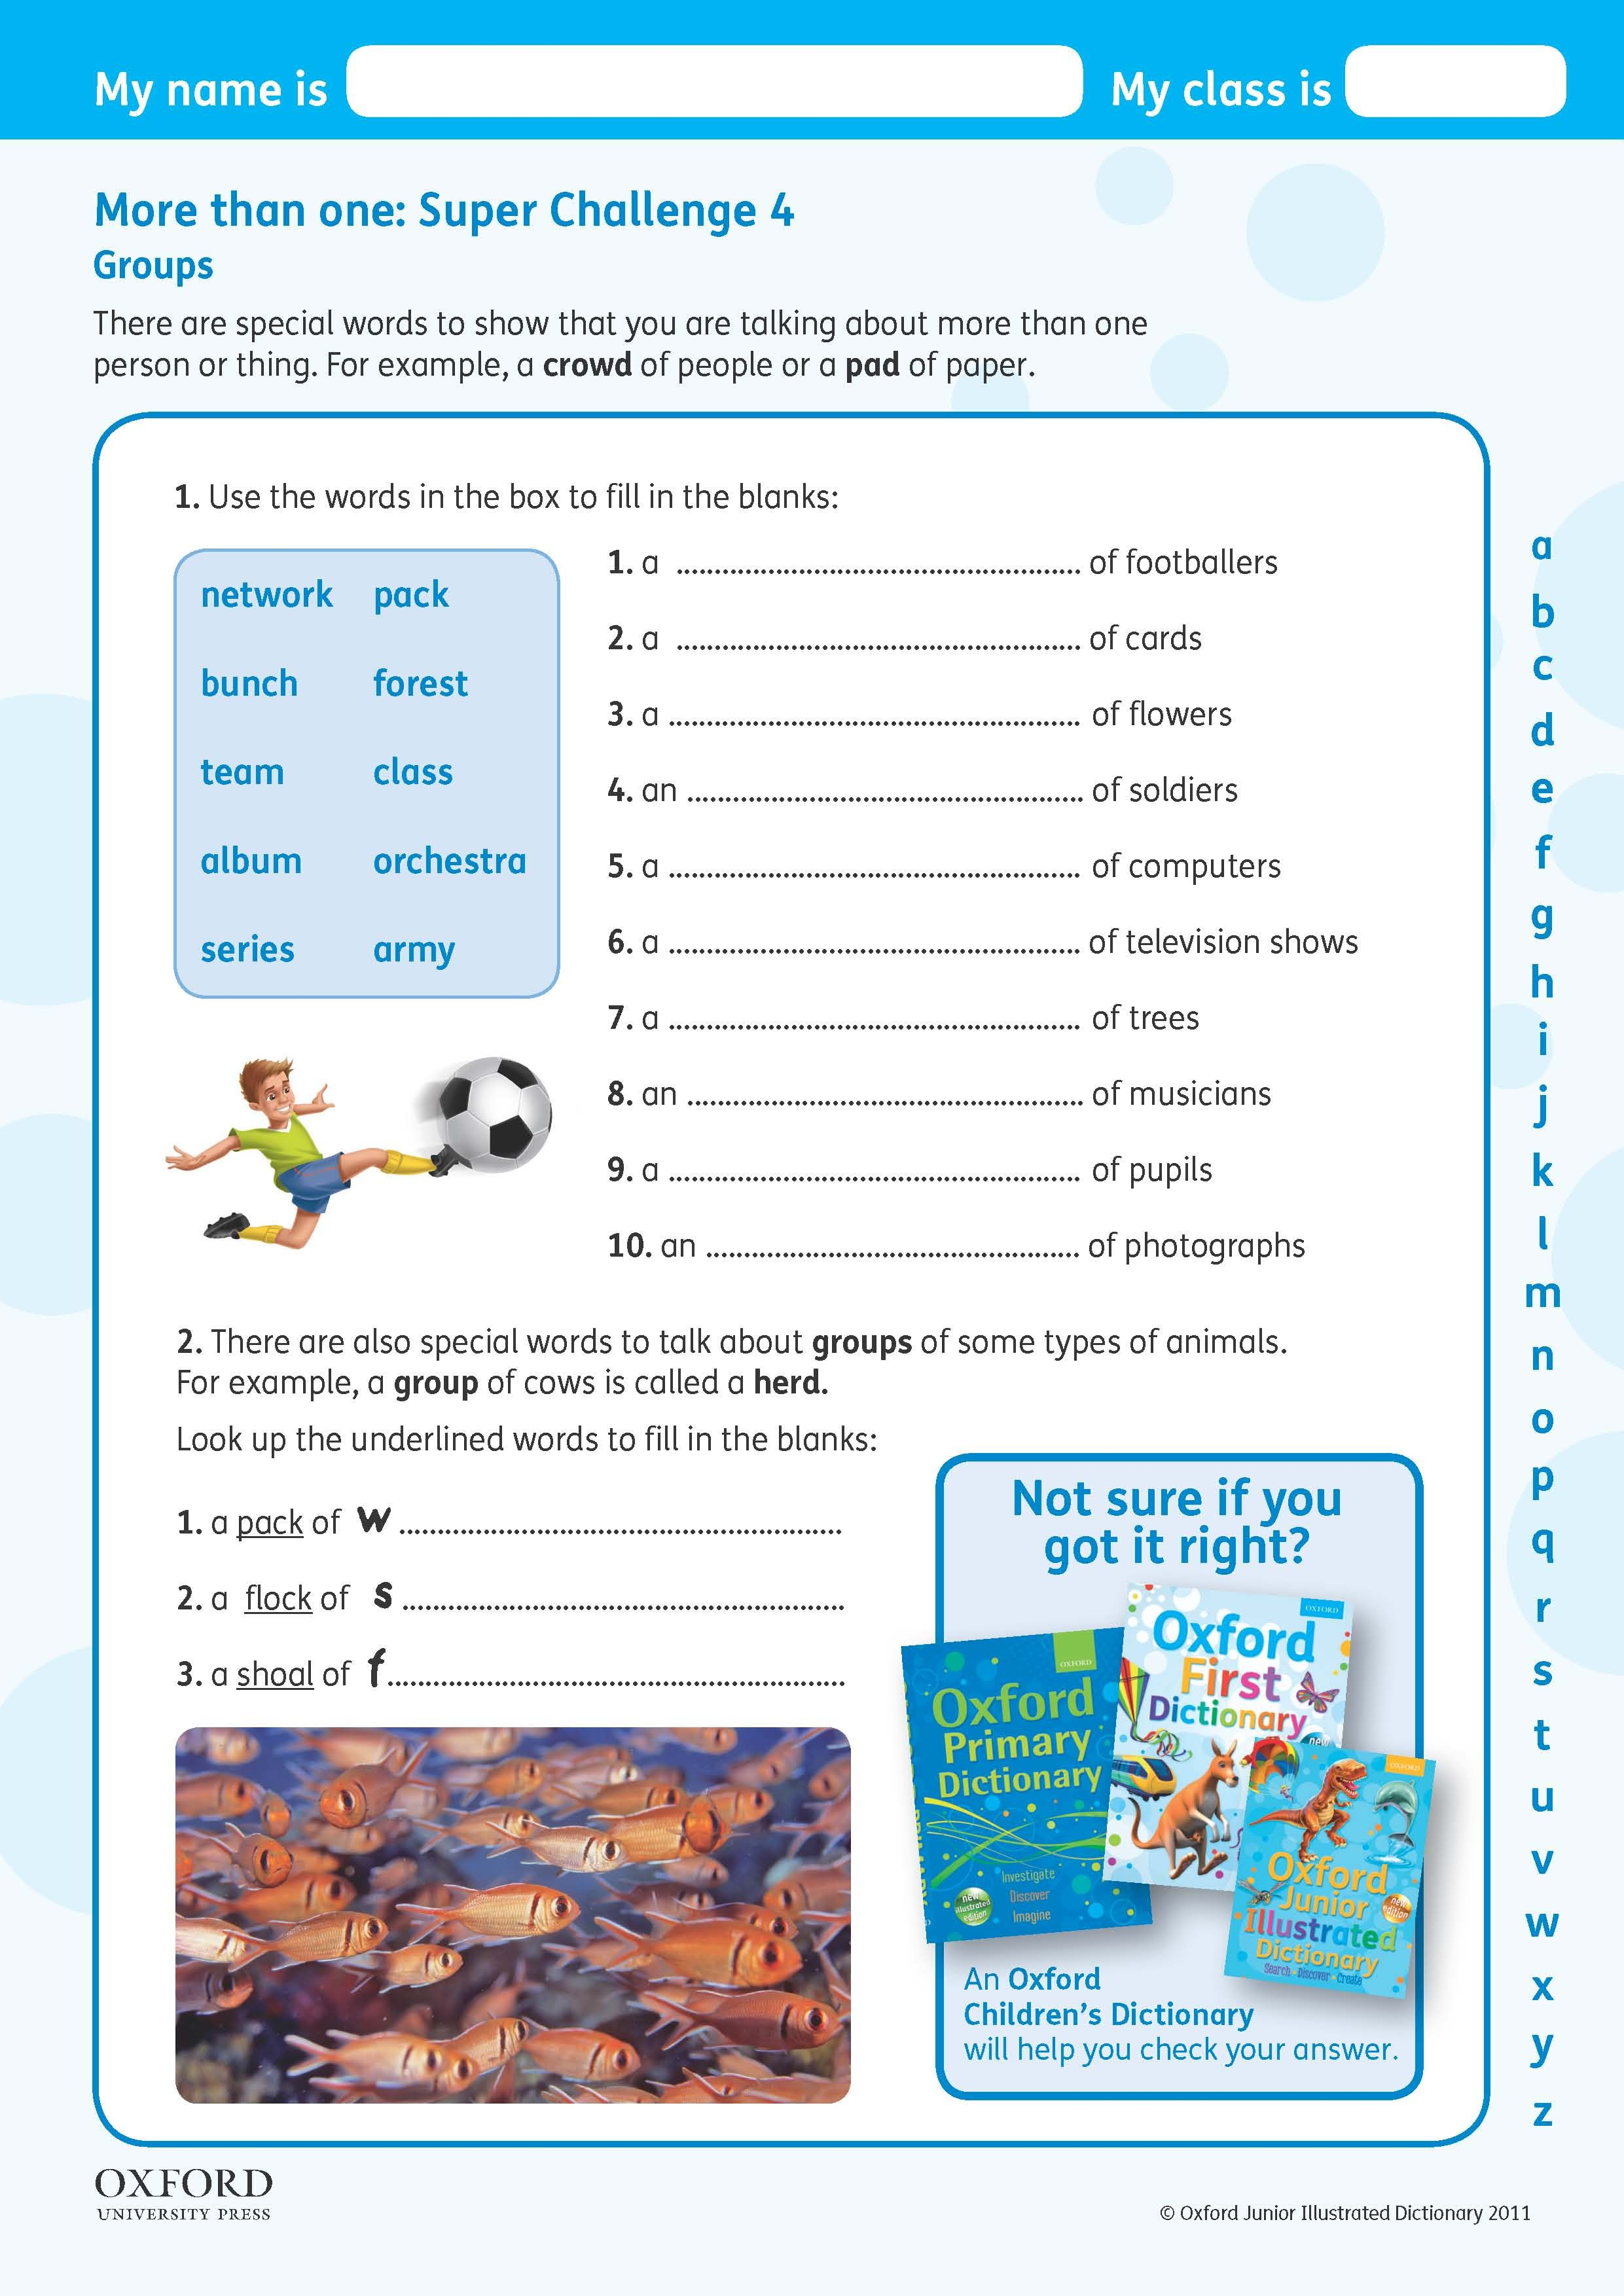 Download Your Free Oxford Junior Illustrated Dictionary Super Challenge Worksheet Teach Children About Word Groups Teaching Kids Dictionary Teaching [ 3508 x 2481 Pixel ]